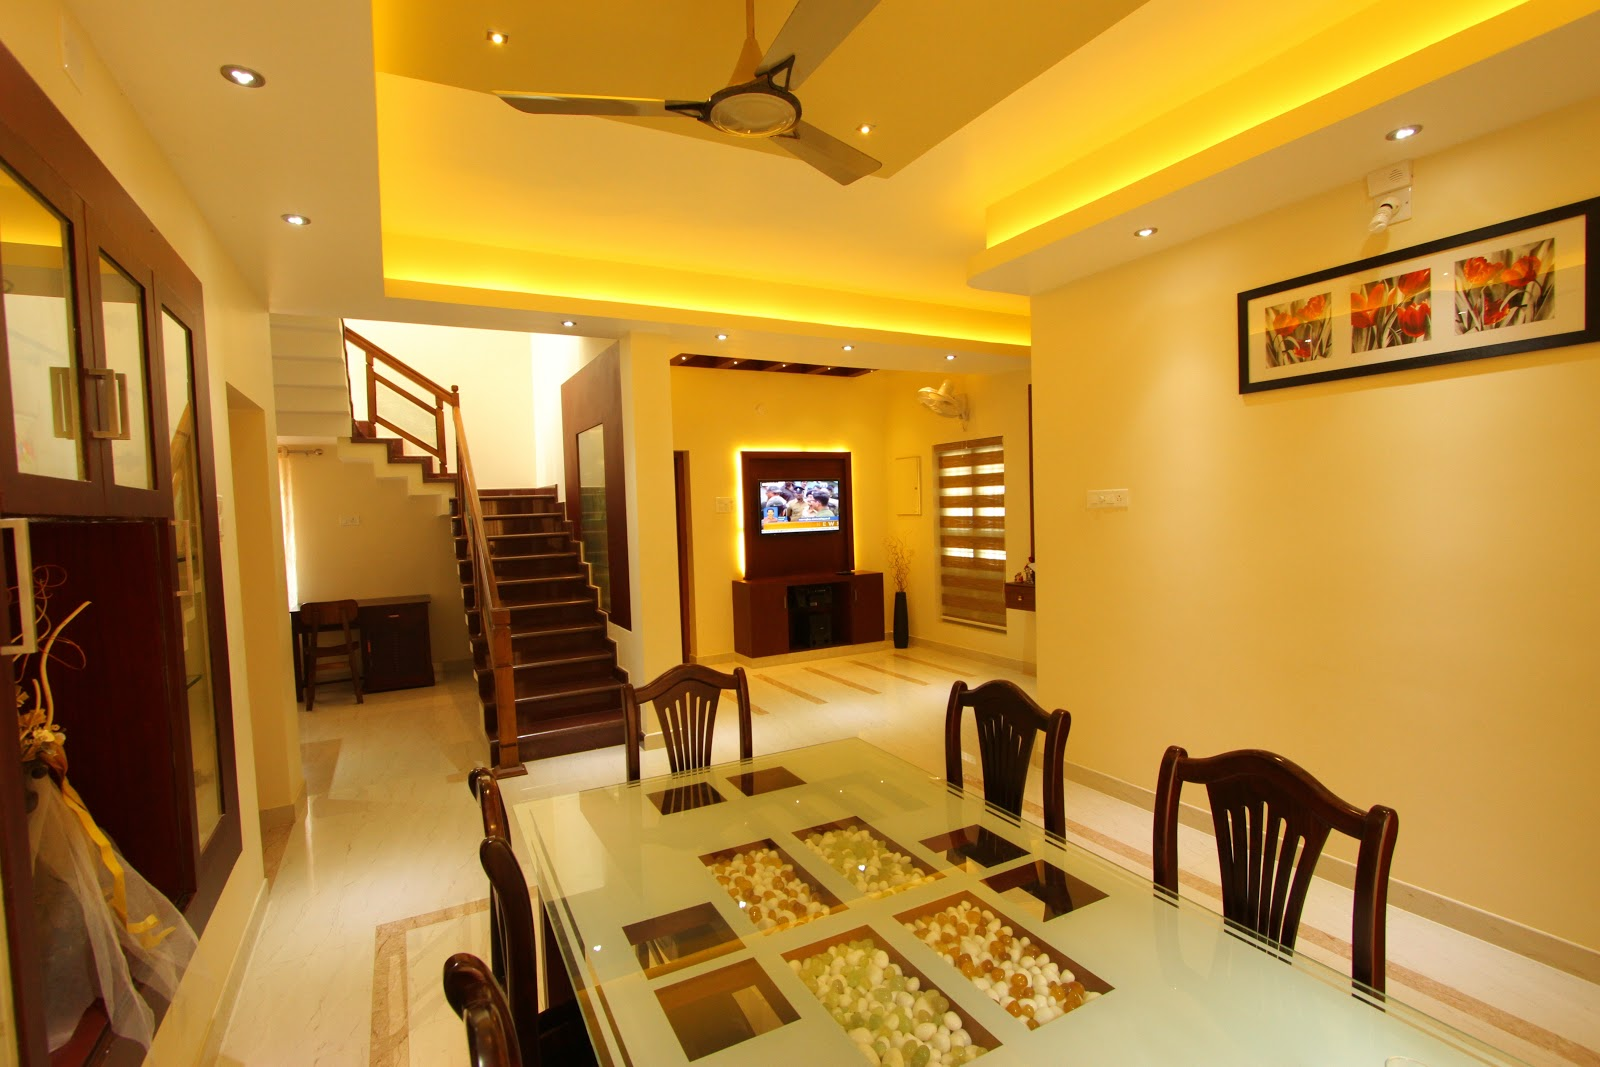 Shilpakala interiors award winning home interior design for Be interior design